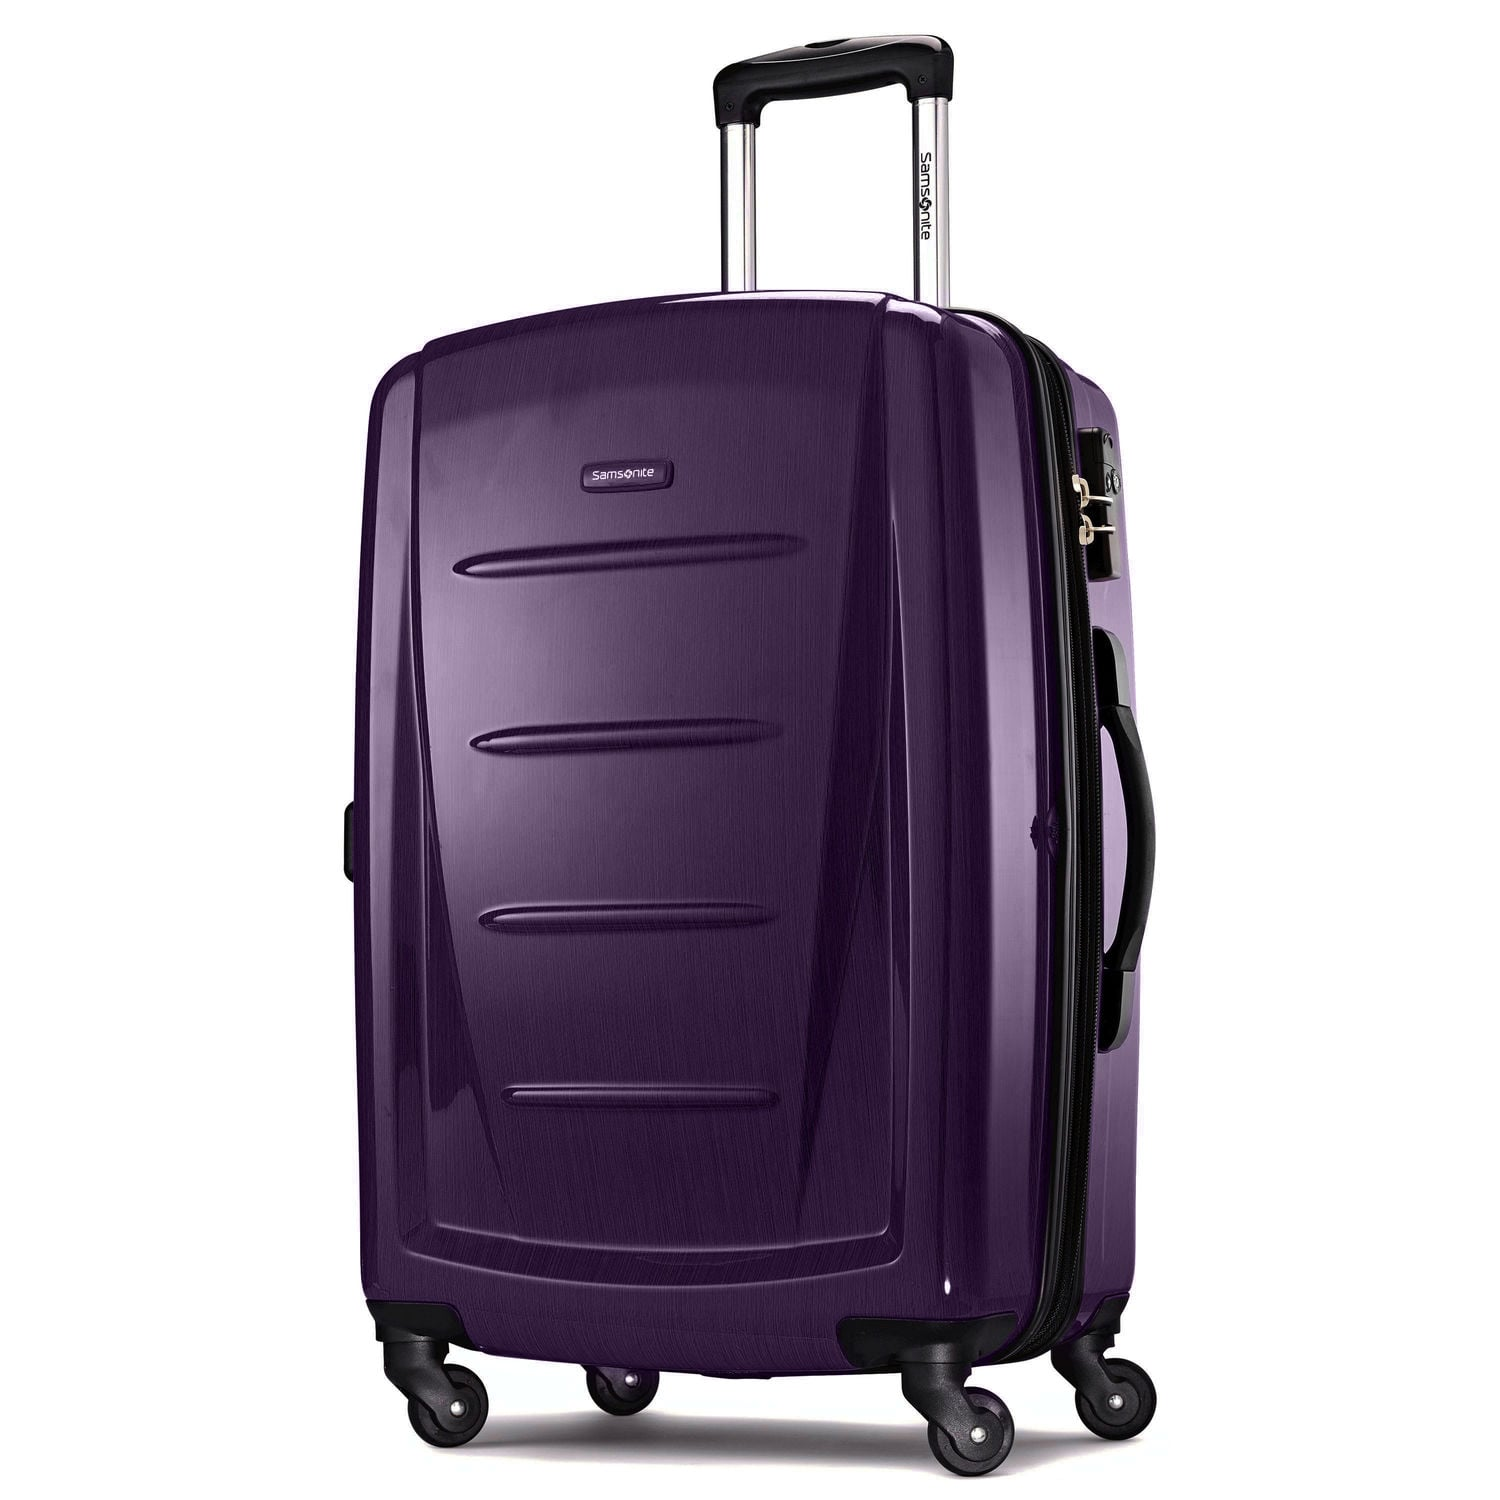 New Samsonite Carry On Suitcase – 66% off: $95.00